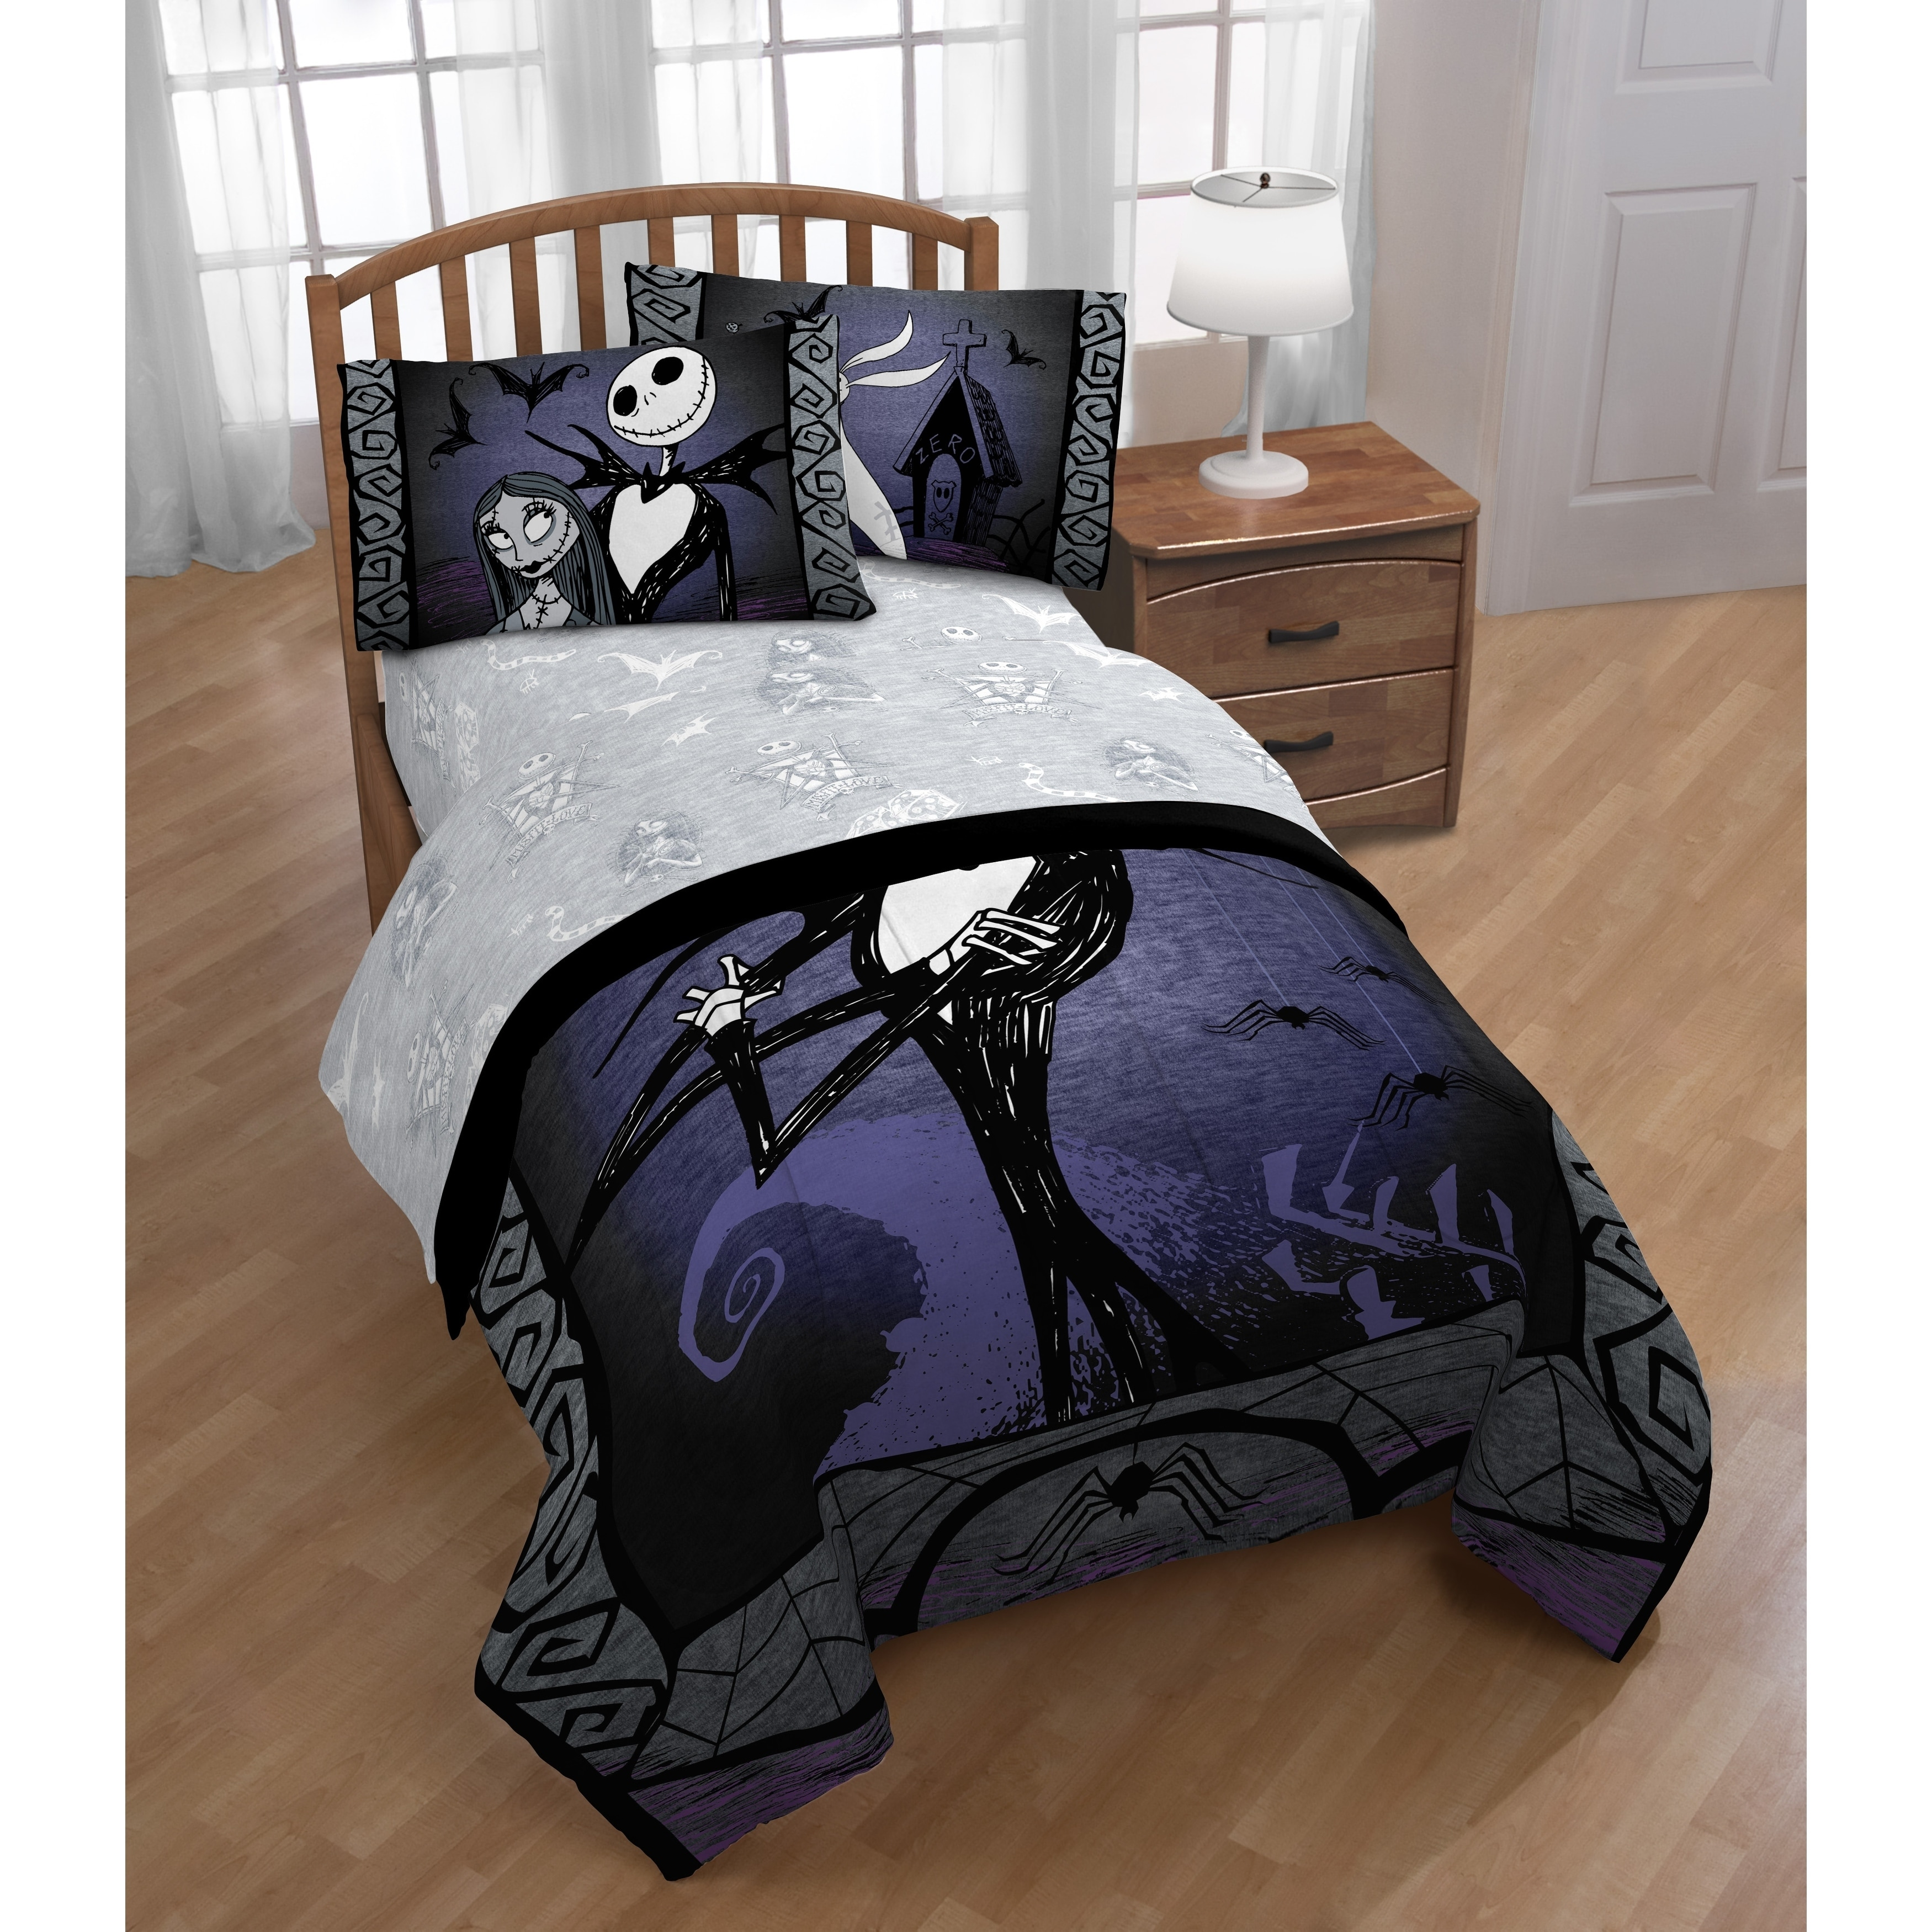 Shop Disney Nightmare Before Christmas Meant To Be 4 Piece Full ...